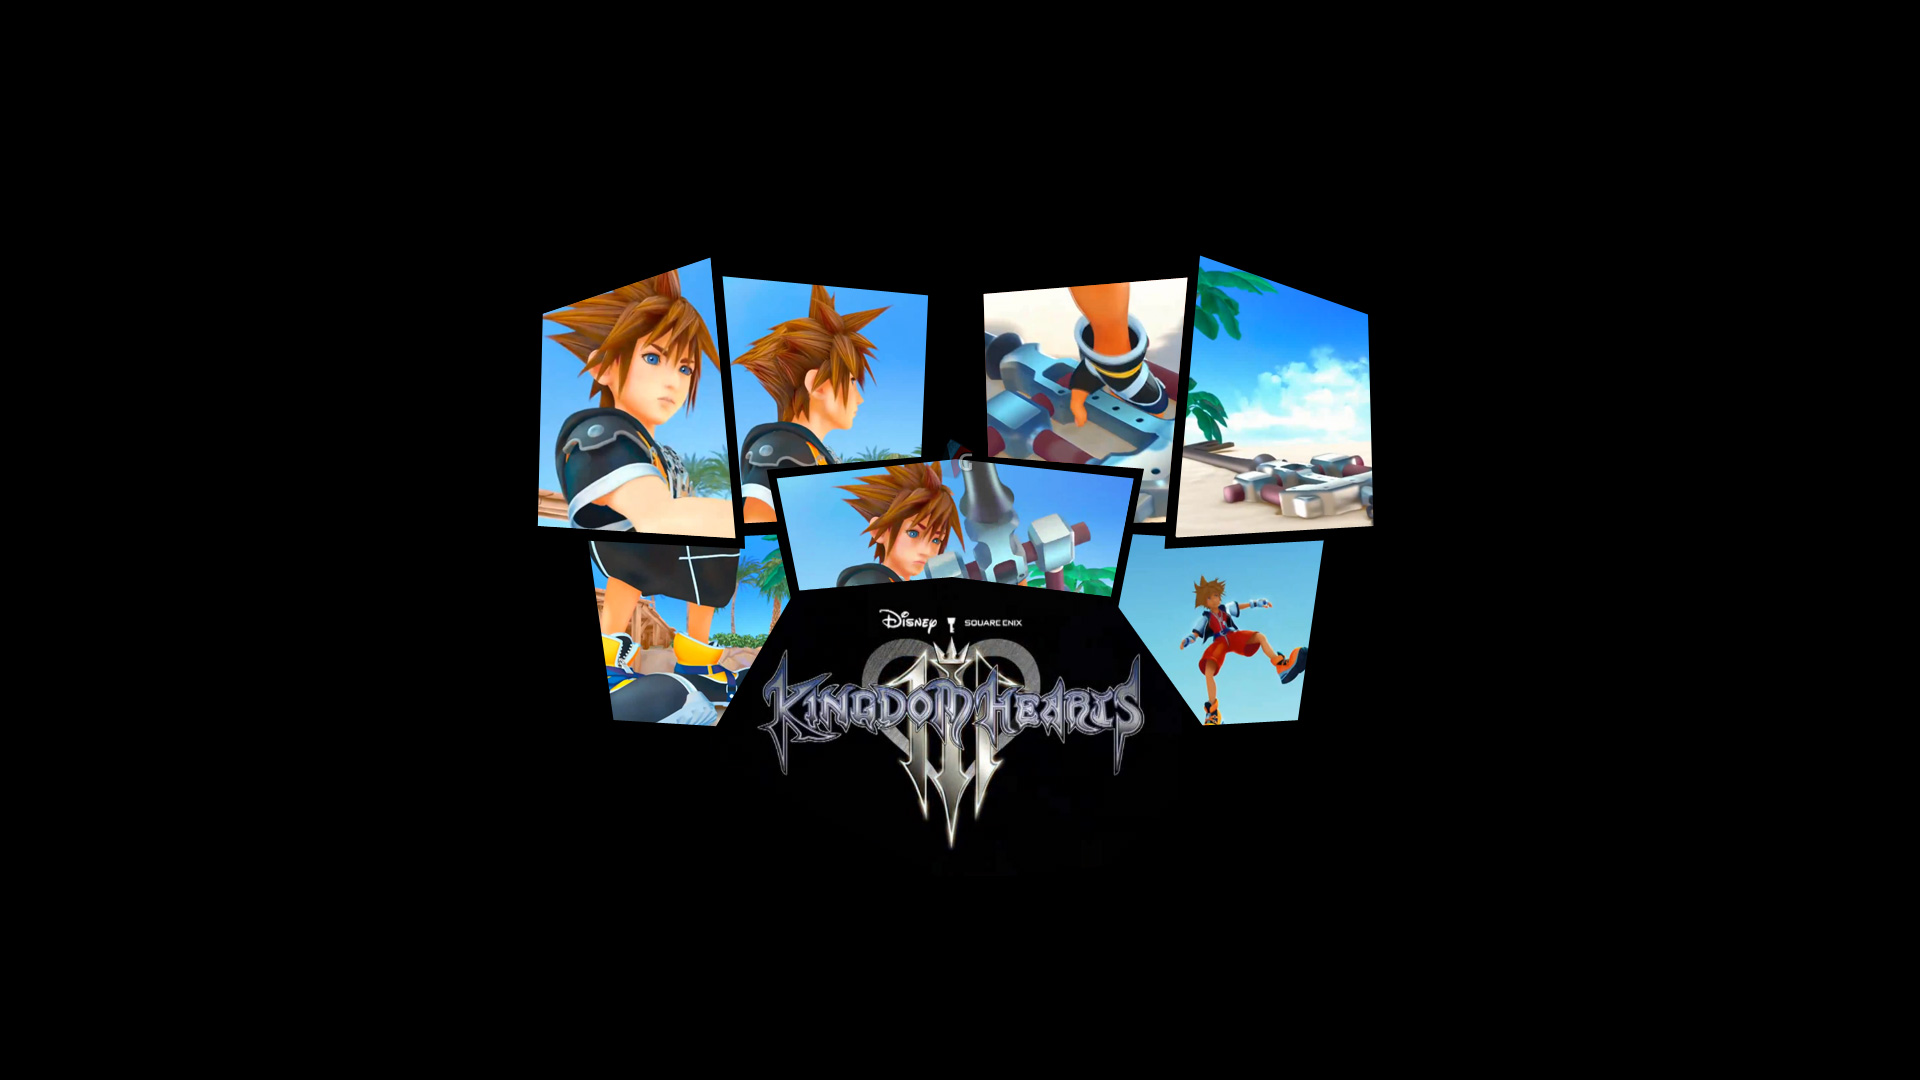 1376315975_kingdom-hearts-3-wallpaper-hd